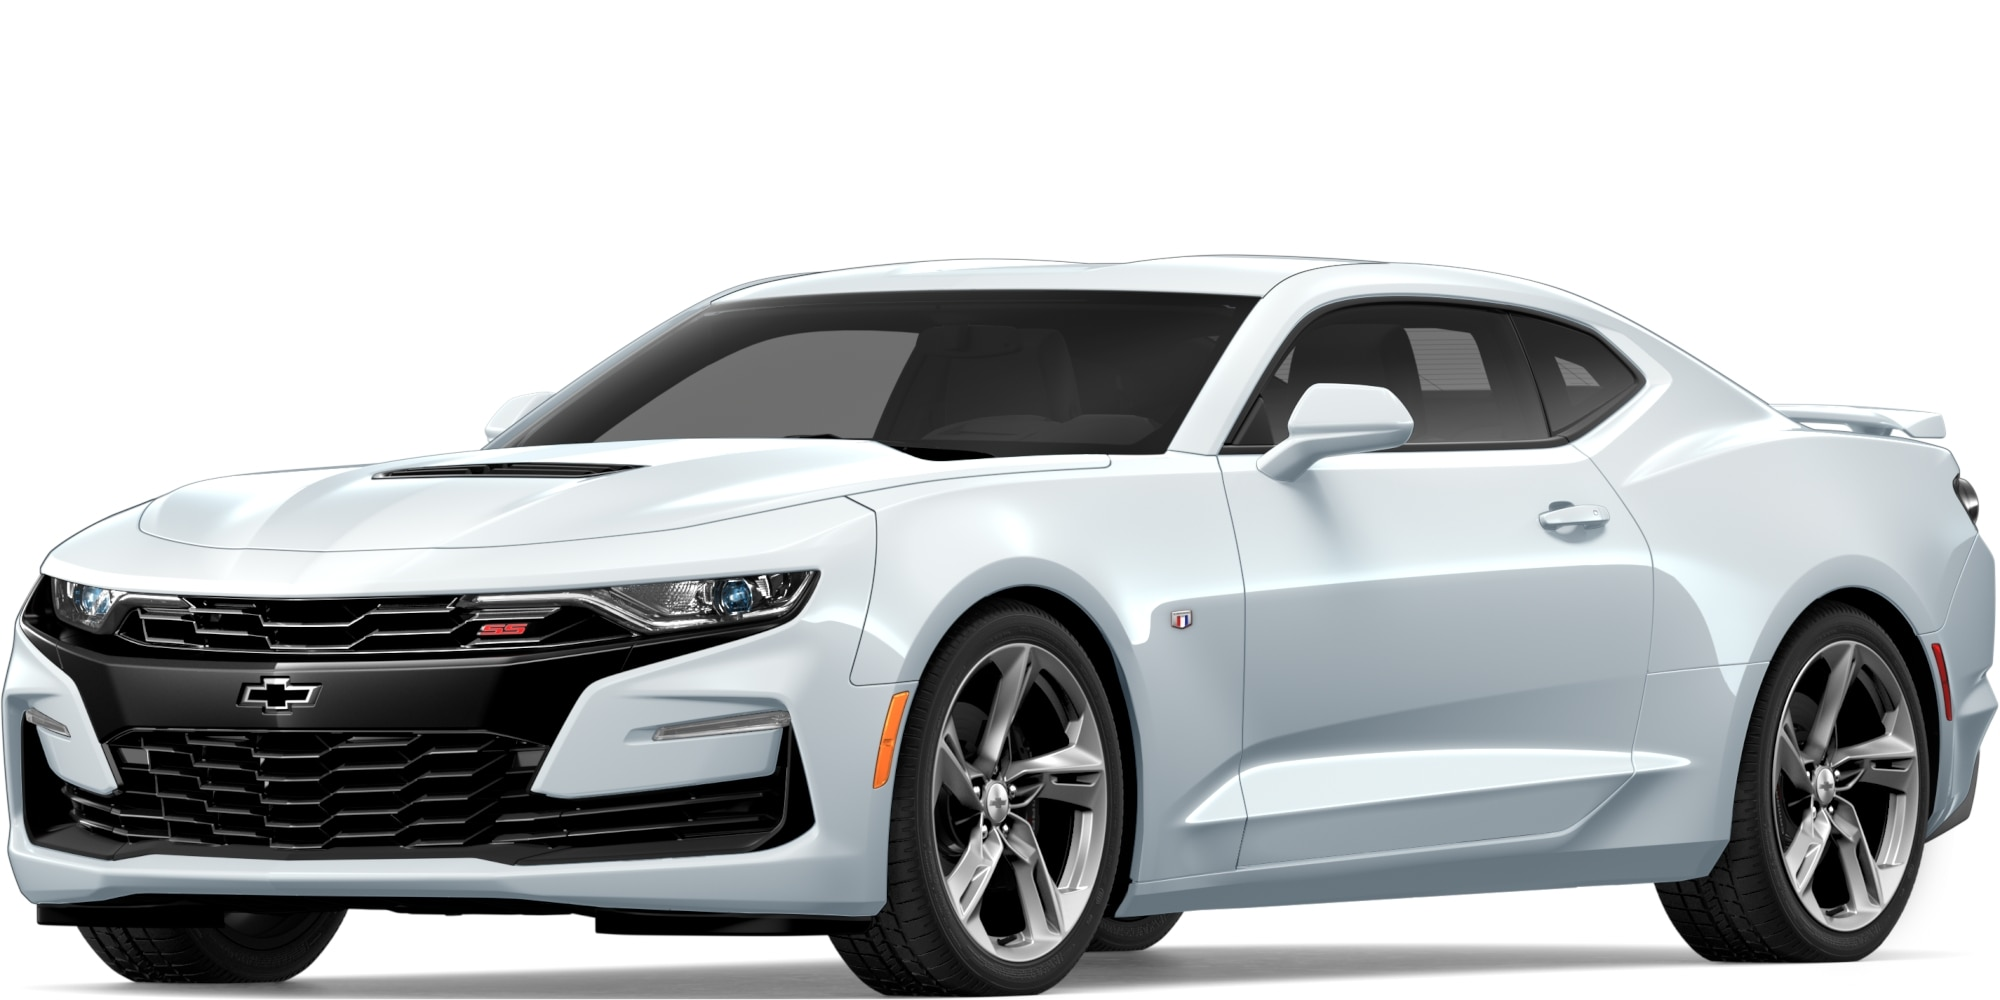 Chevrolet Camaro 2019 en Blanco Nevado